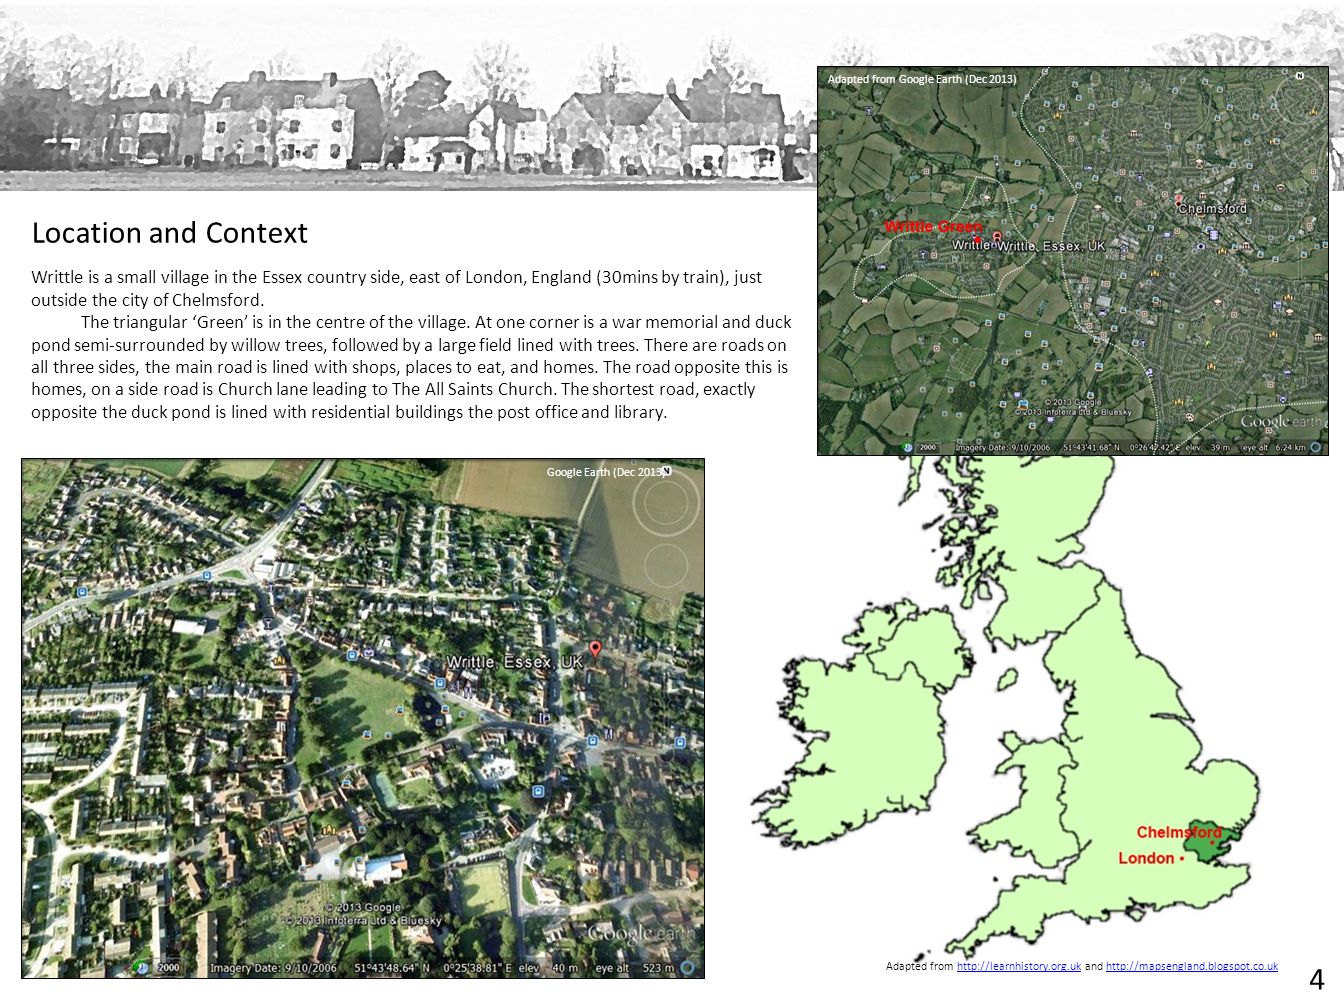 Adapted from http://learnhistory.org.uk and http://mapsengland.blogspot.co.ukhttp://learnhistory.org.ukhttp://mapsengland.blogspot.co.uk Google Earth (Dec 2013) Writtle is a small village in the Essex country side, east of London, England (30mins by train), just outside the city of Chelmsford.